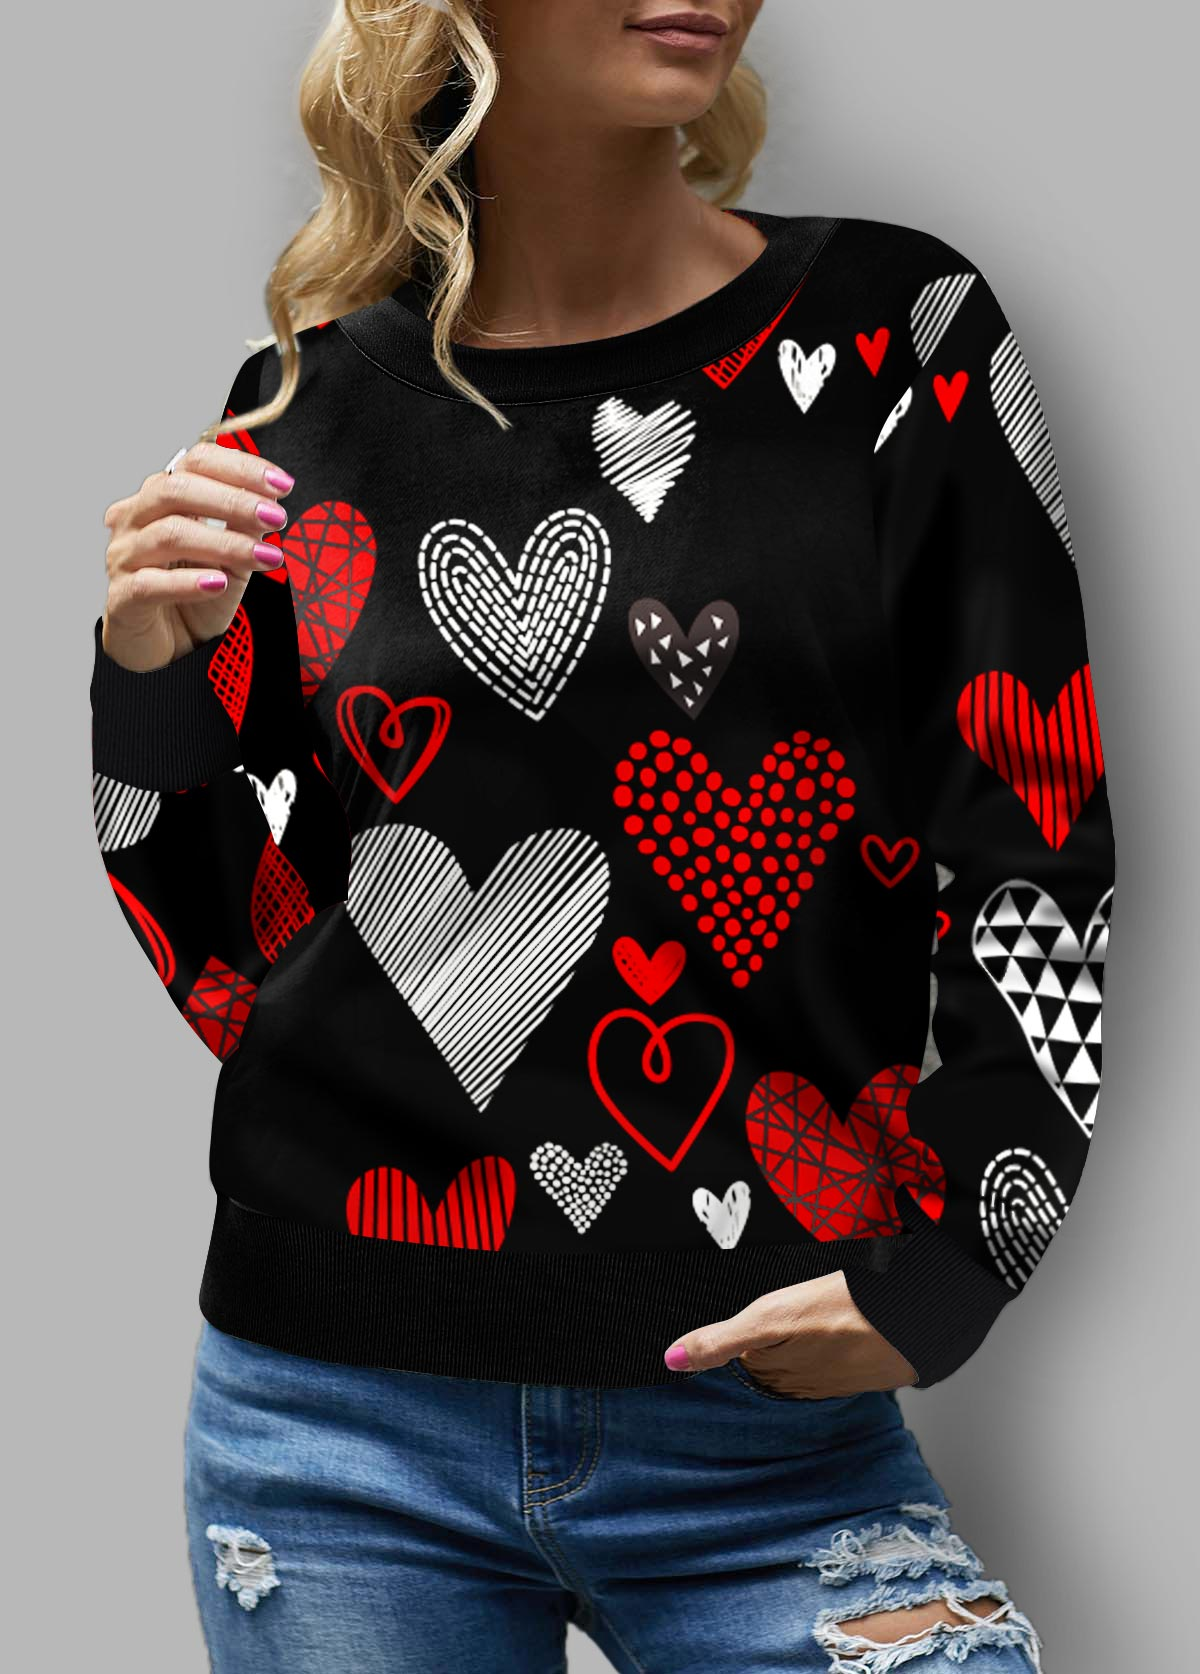 ROTITA Heart Print Plus Size Long Sleeve Sweatshirt